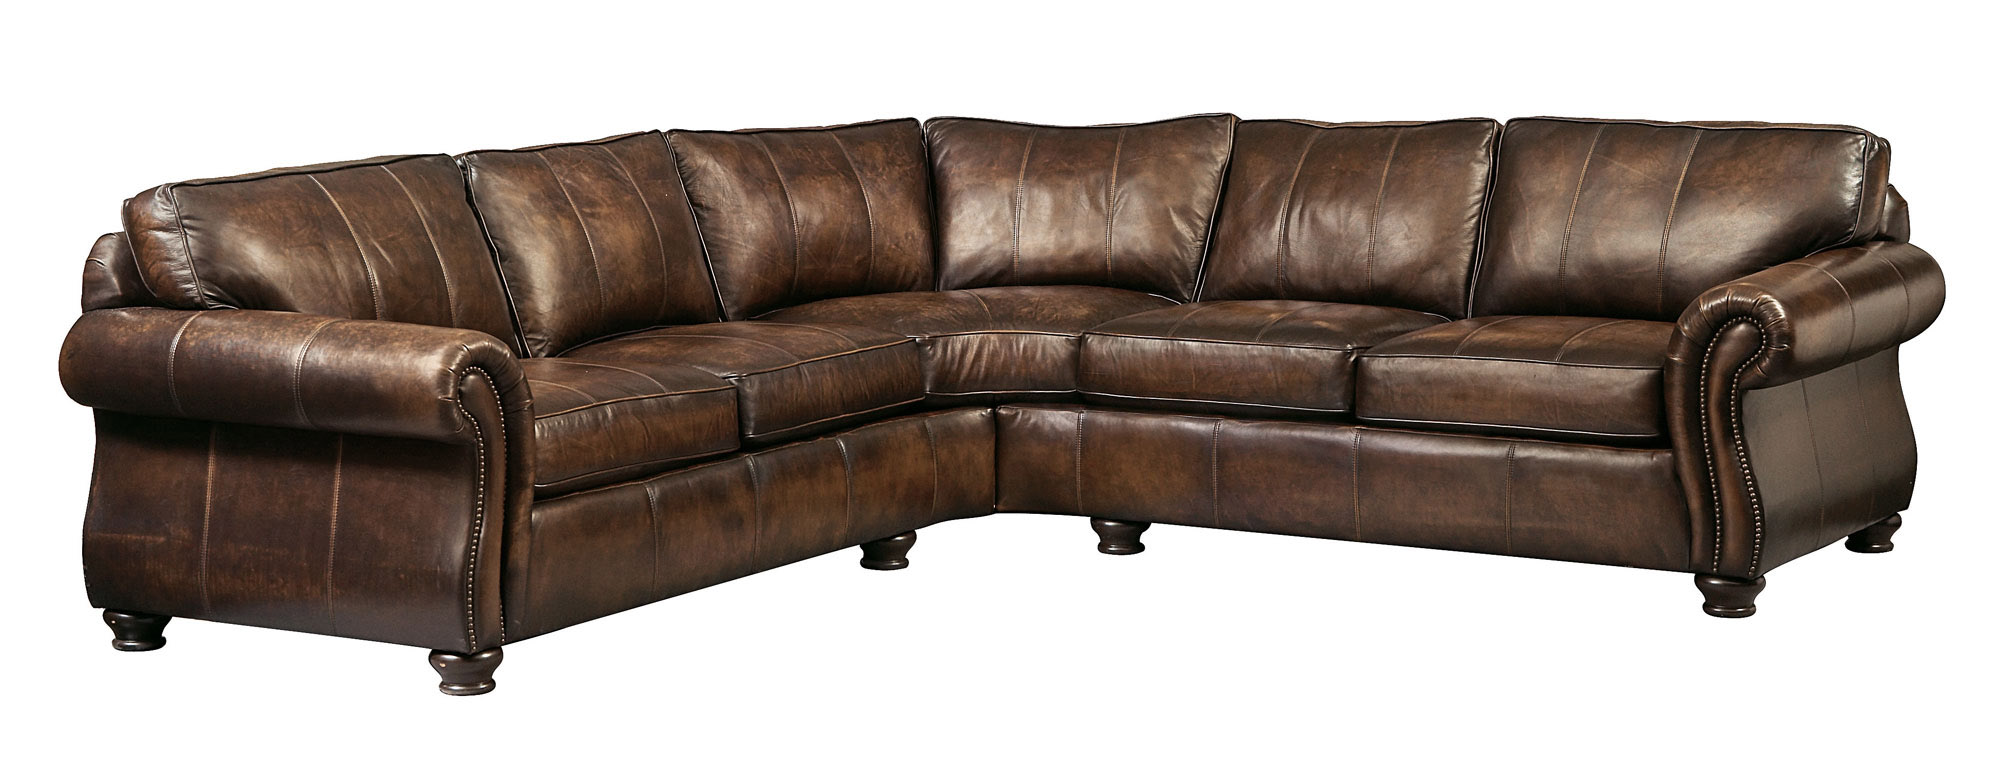 Bernhardt leather sofa roselawnlutheran for Leather sectional sofa